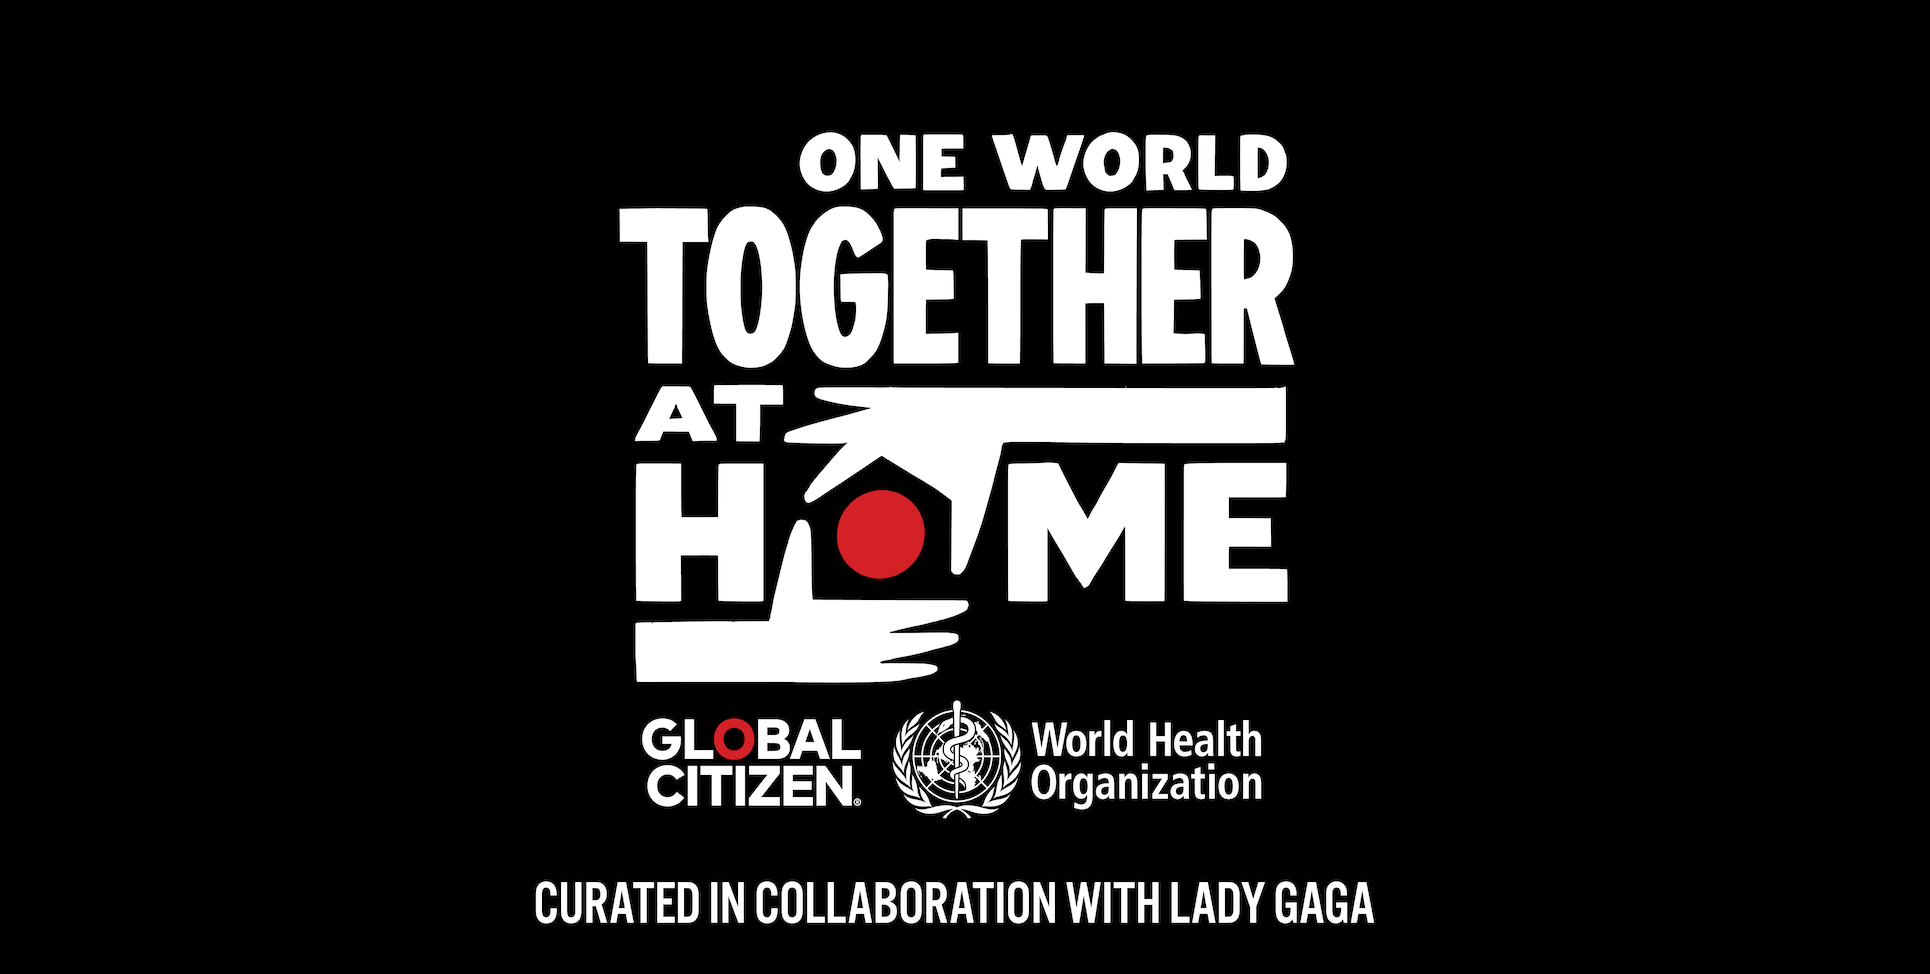 Where to Watch the One World: Together at Home broadcast